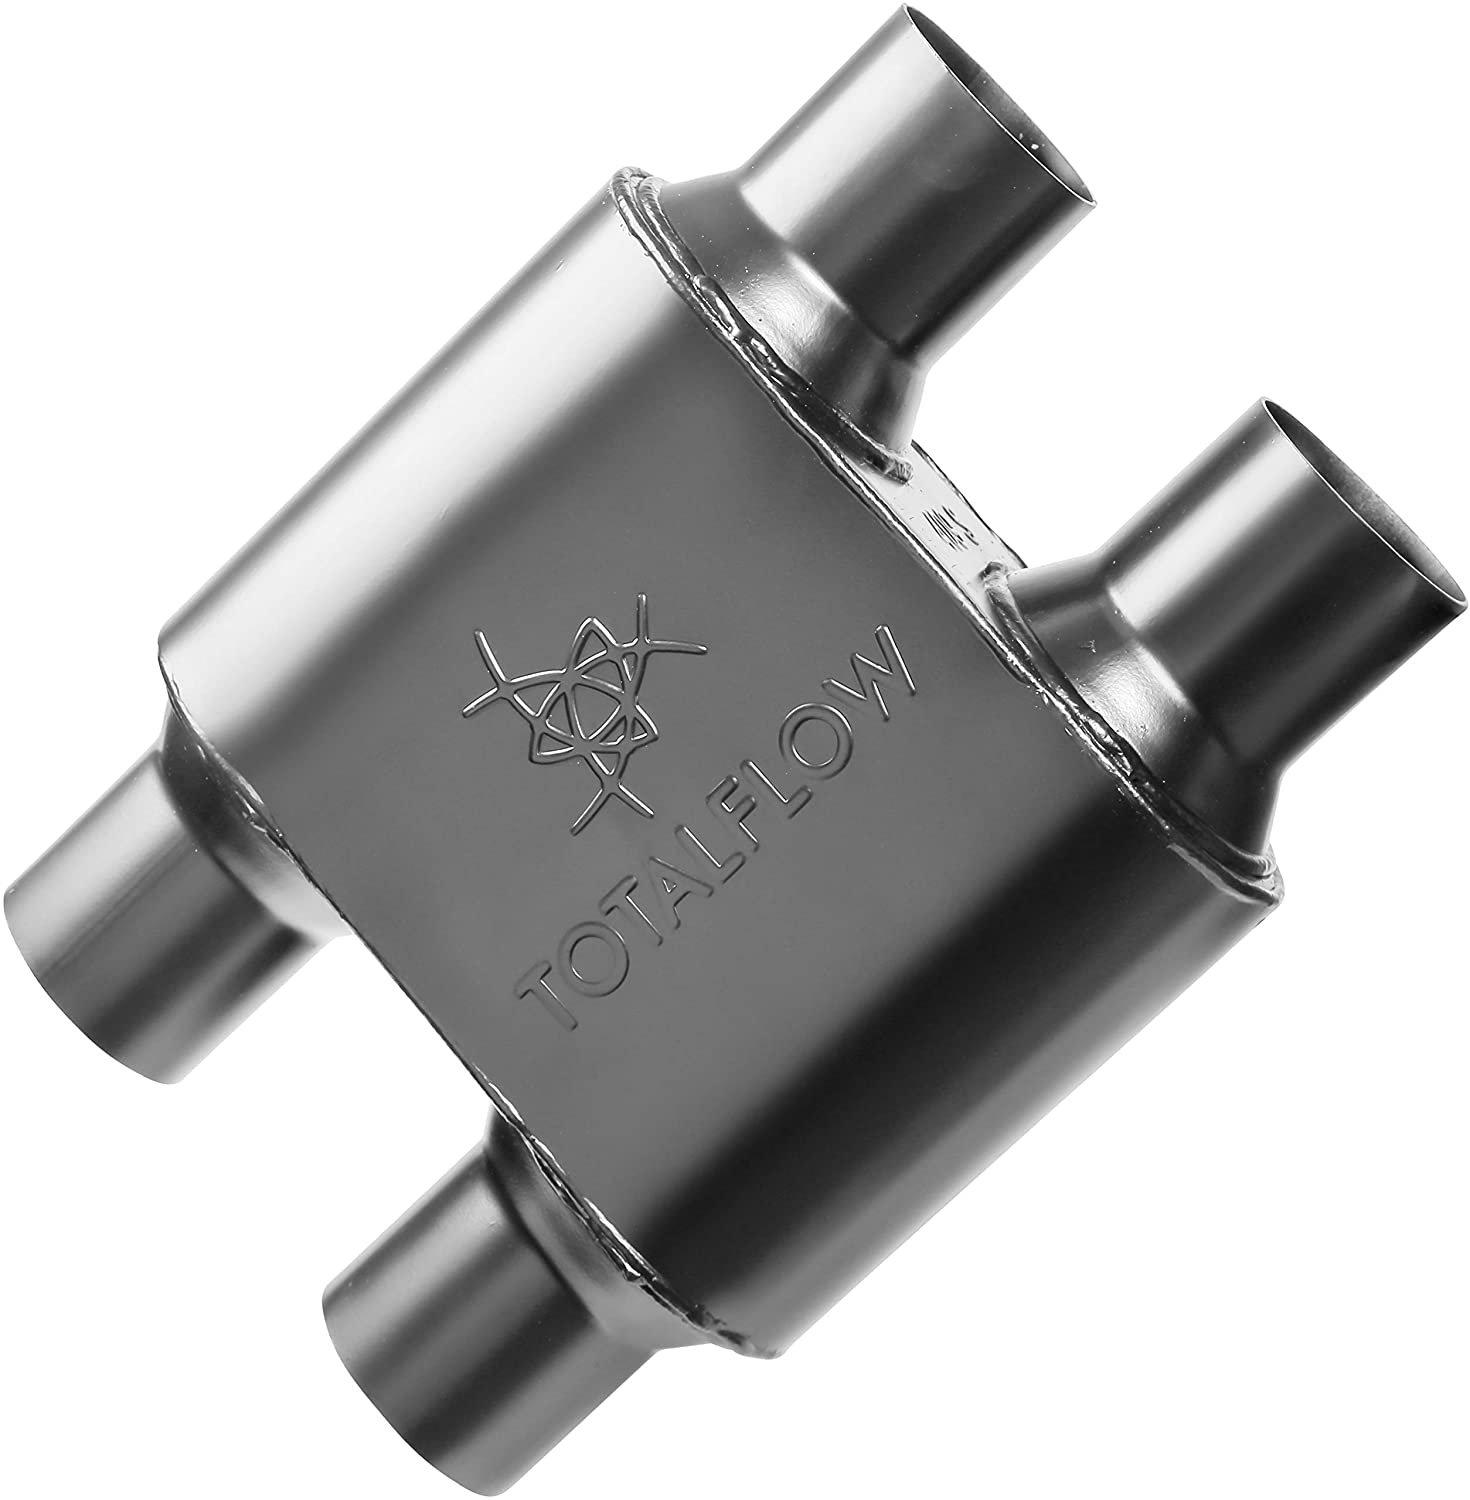 TOTALFLOW 442516 Single Chamber Universal 2.5' Muffler - 2.5' Offset IN / 2.5' Center OUT.